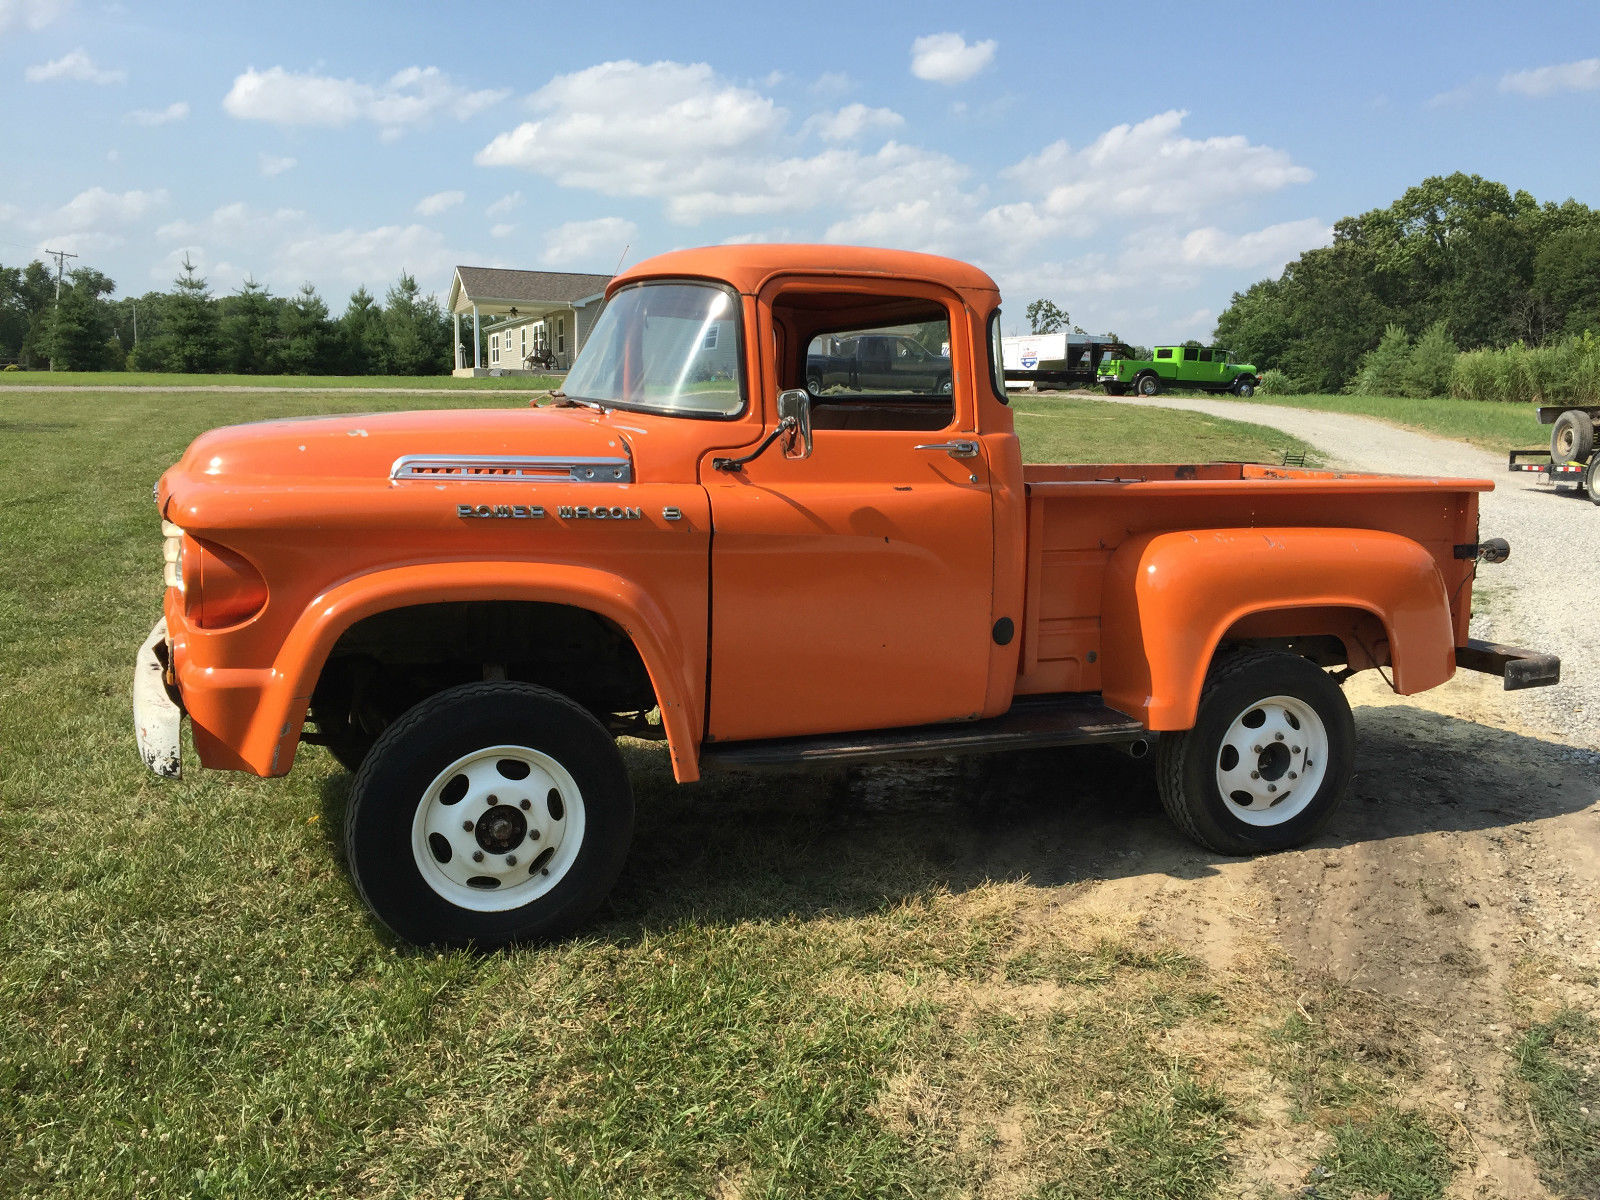 This 1958 Dodge Power Wagon Is Awesome In Orange – A Perfectly Worn In Rig